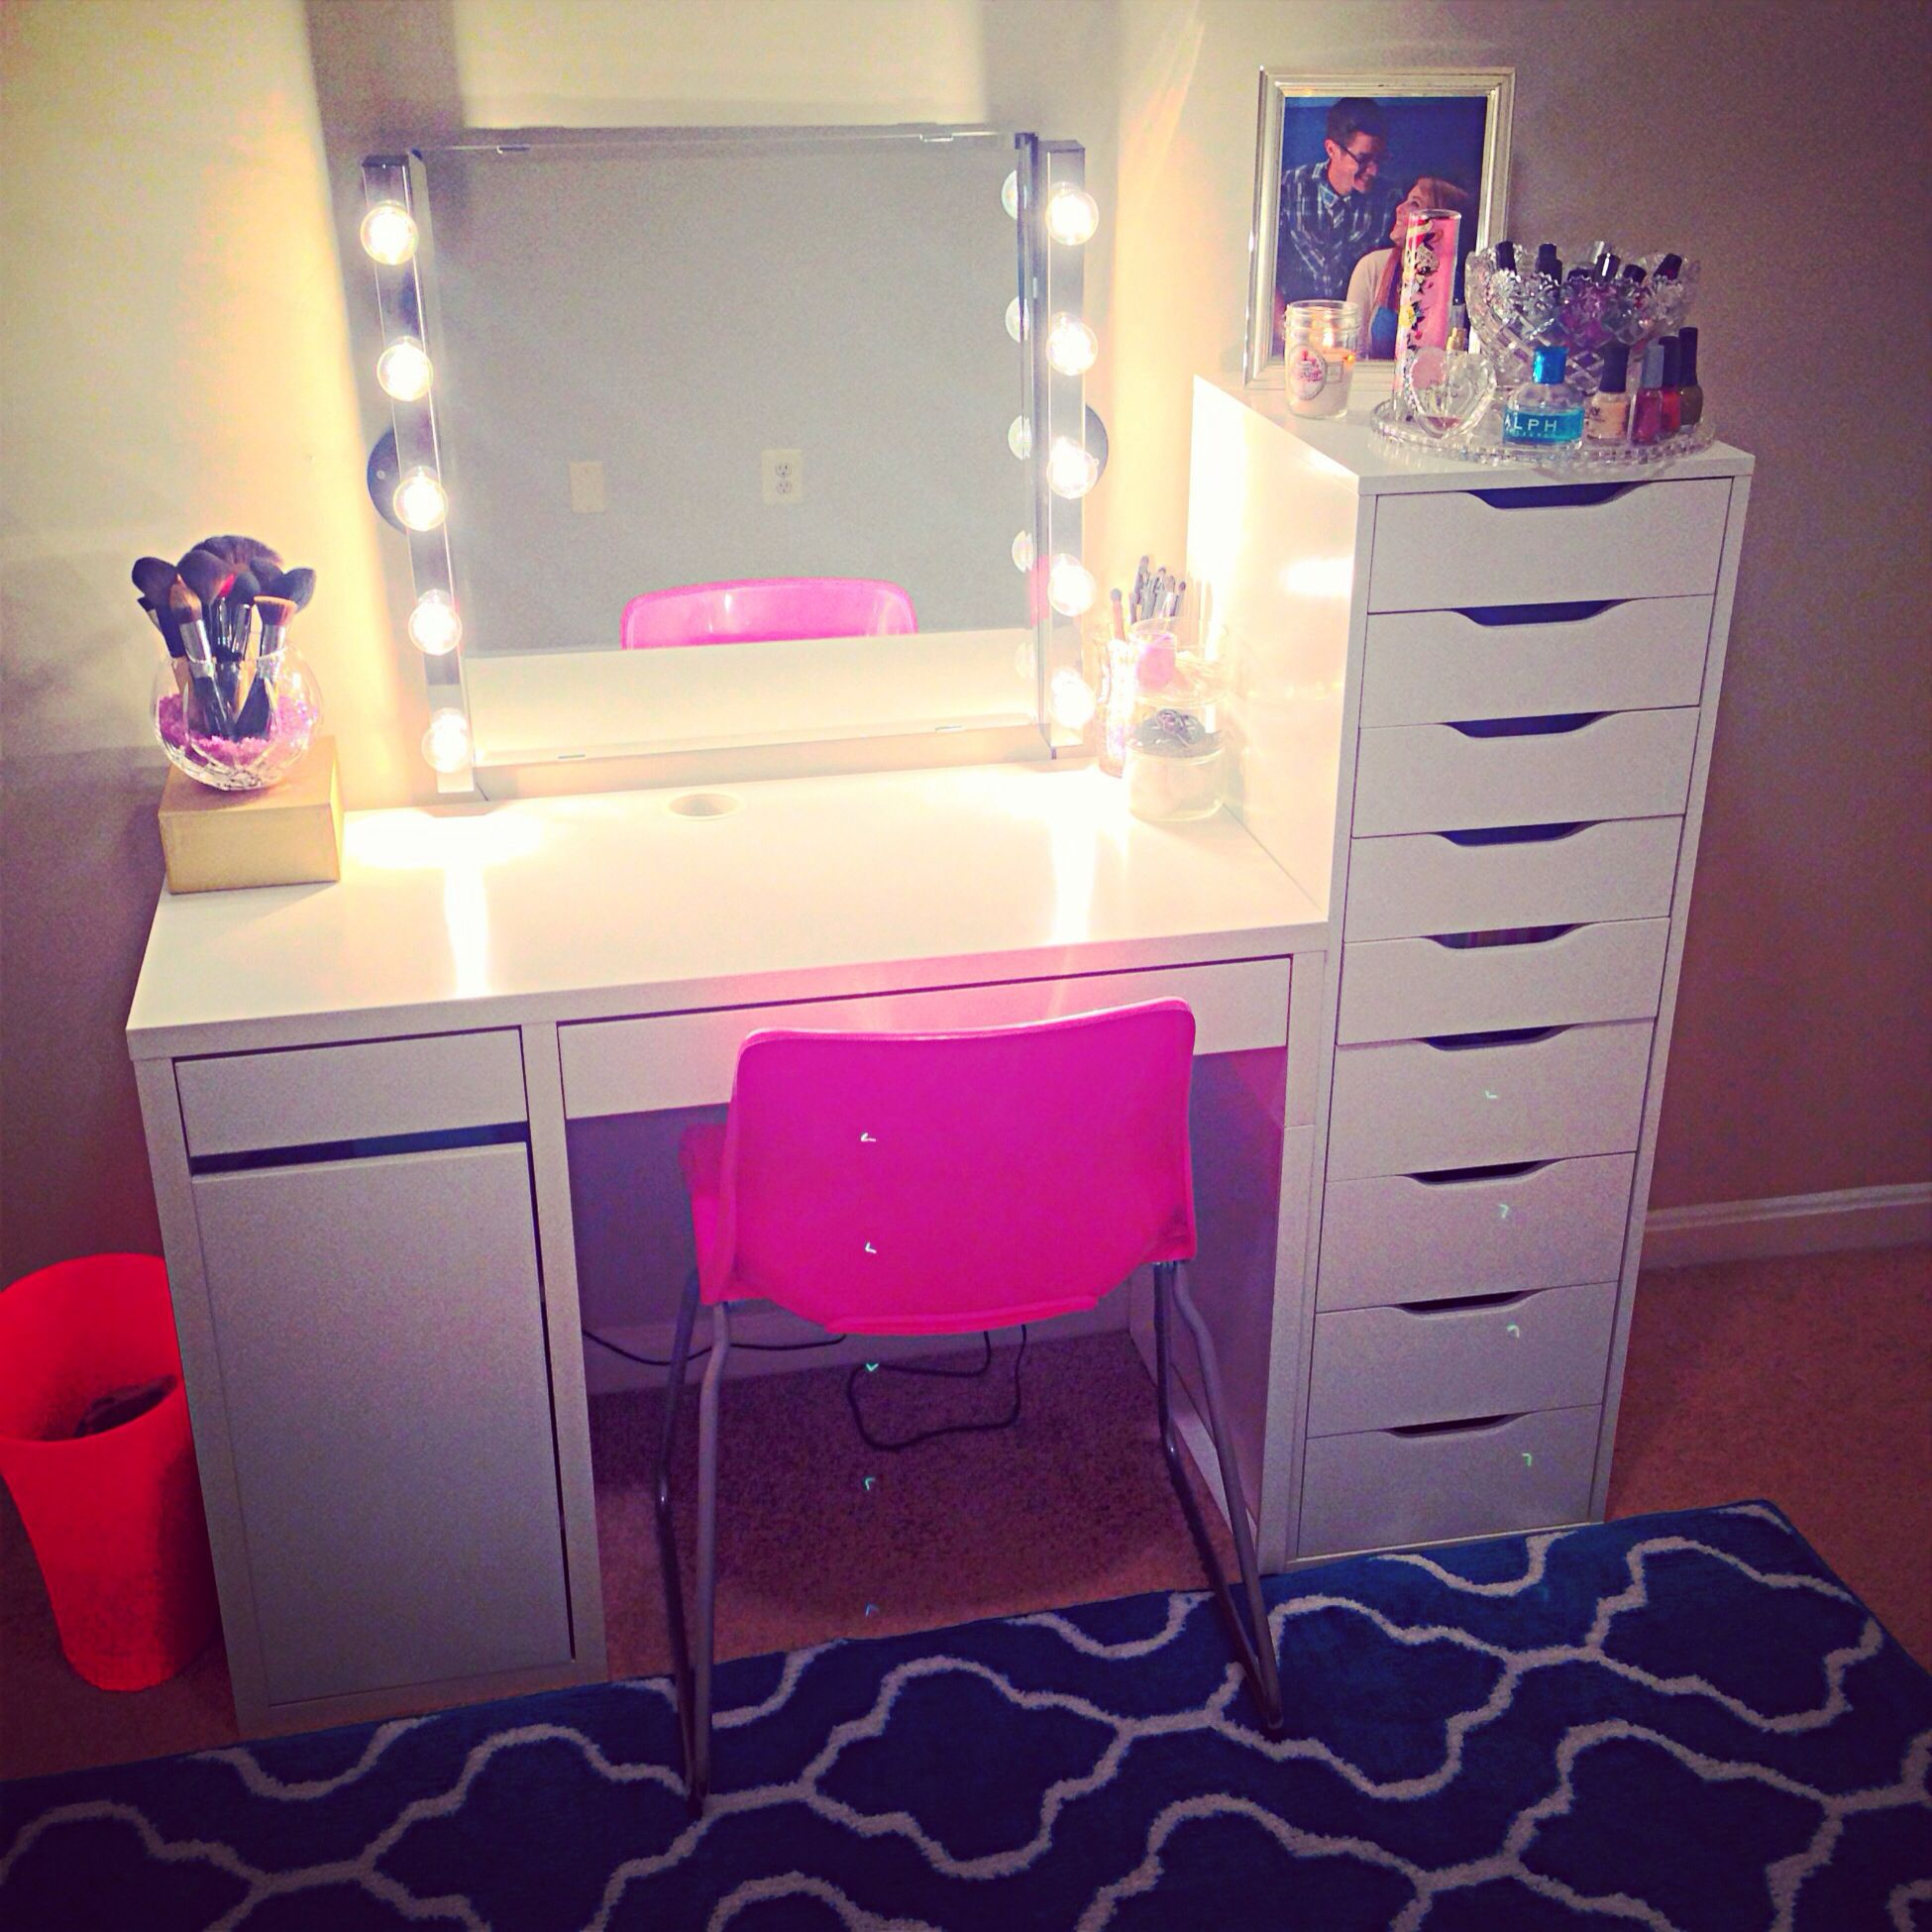 My vanity setup using mostly ikea items kolja mirror musik lights